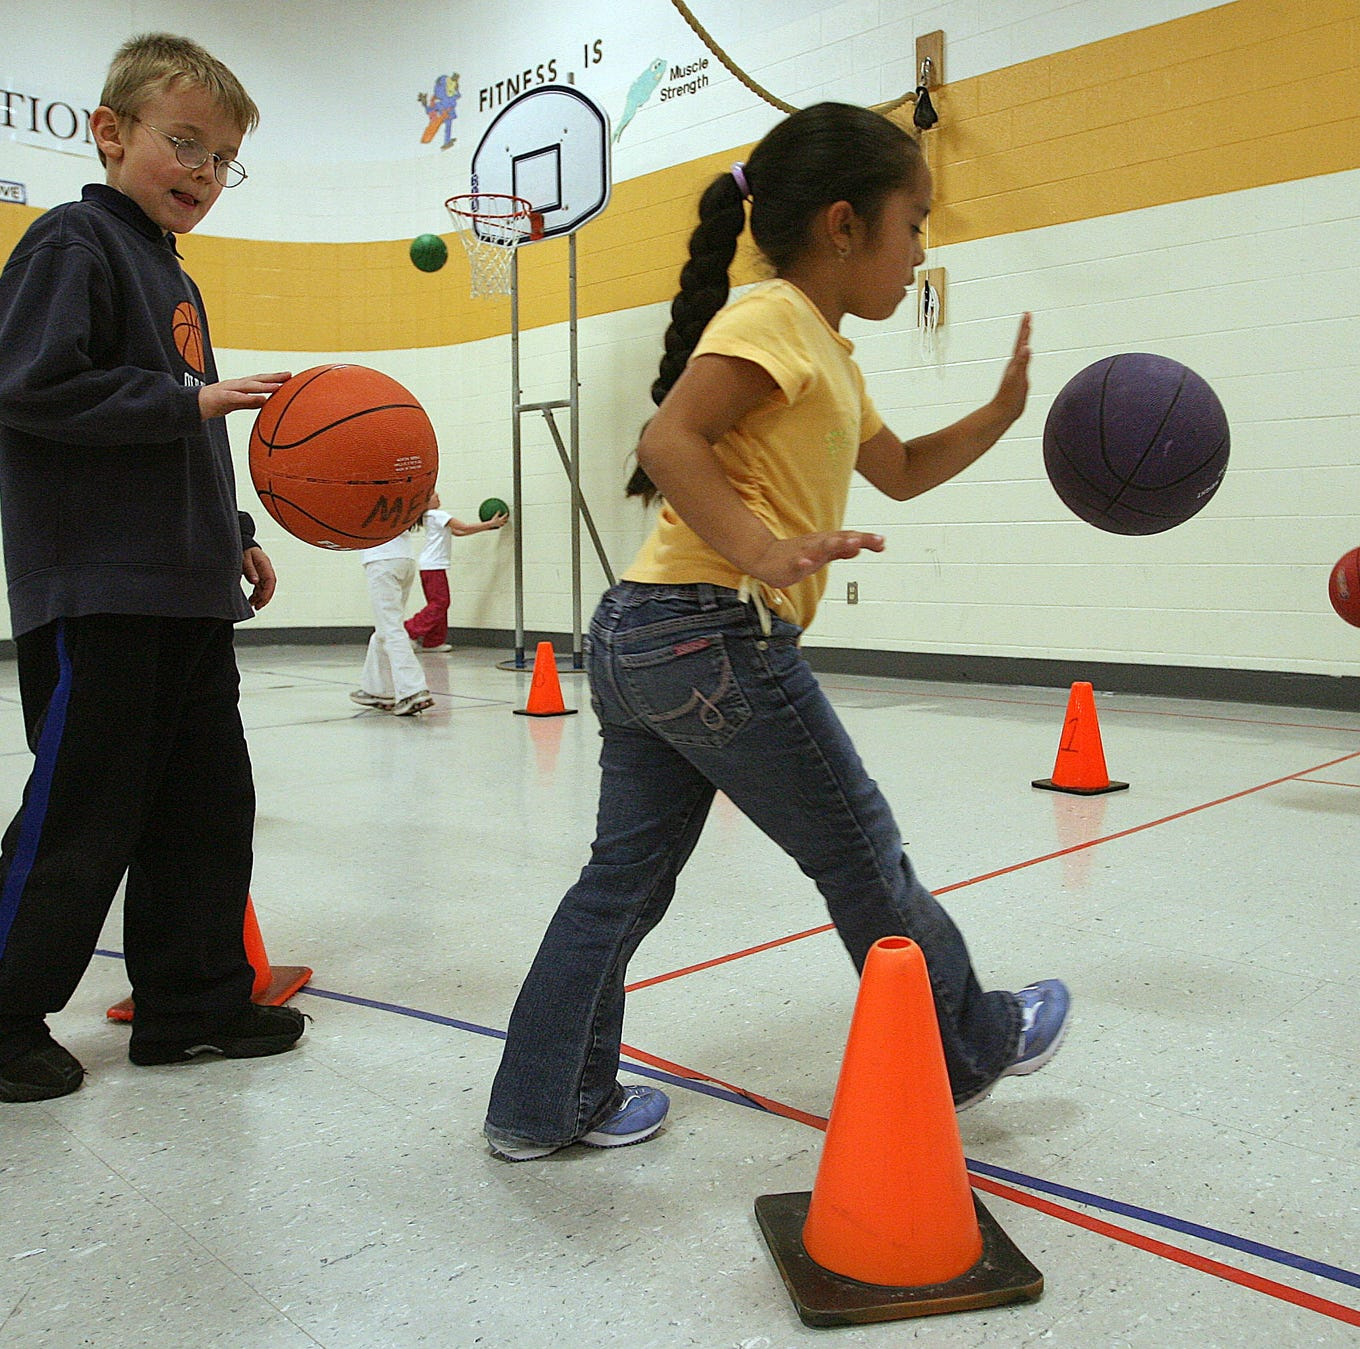 Physical education is key to longer, happier lives. Our kids need more of it |Opinion